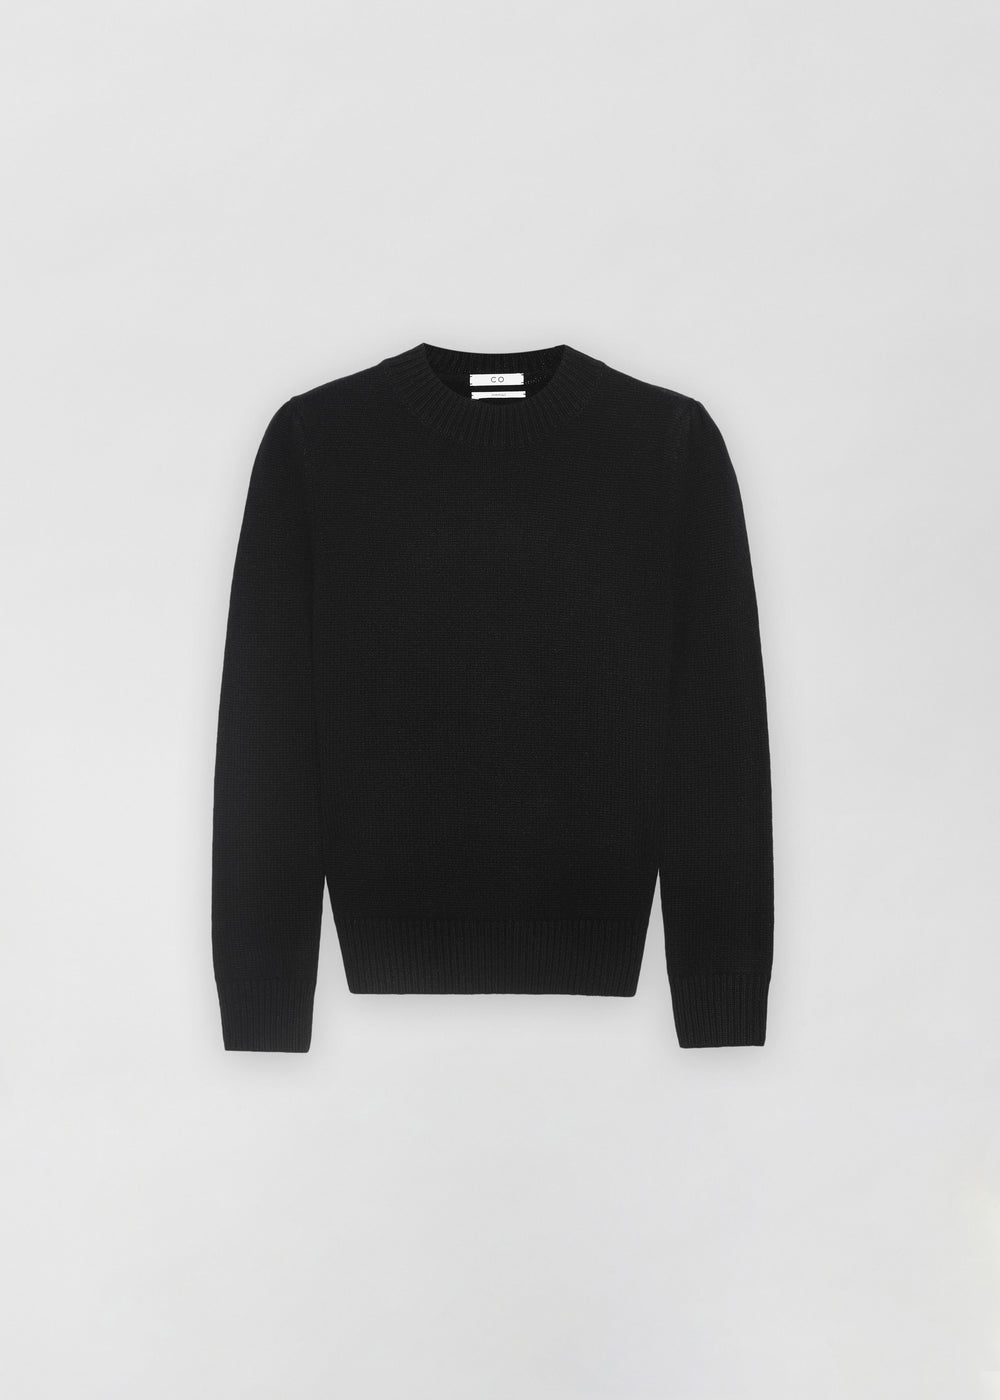 Ruched Cashmere Crew Neck Sweater - Black - CO